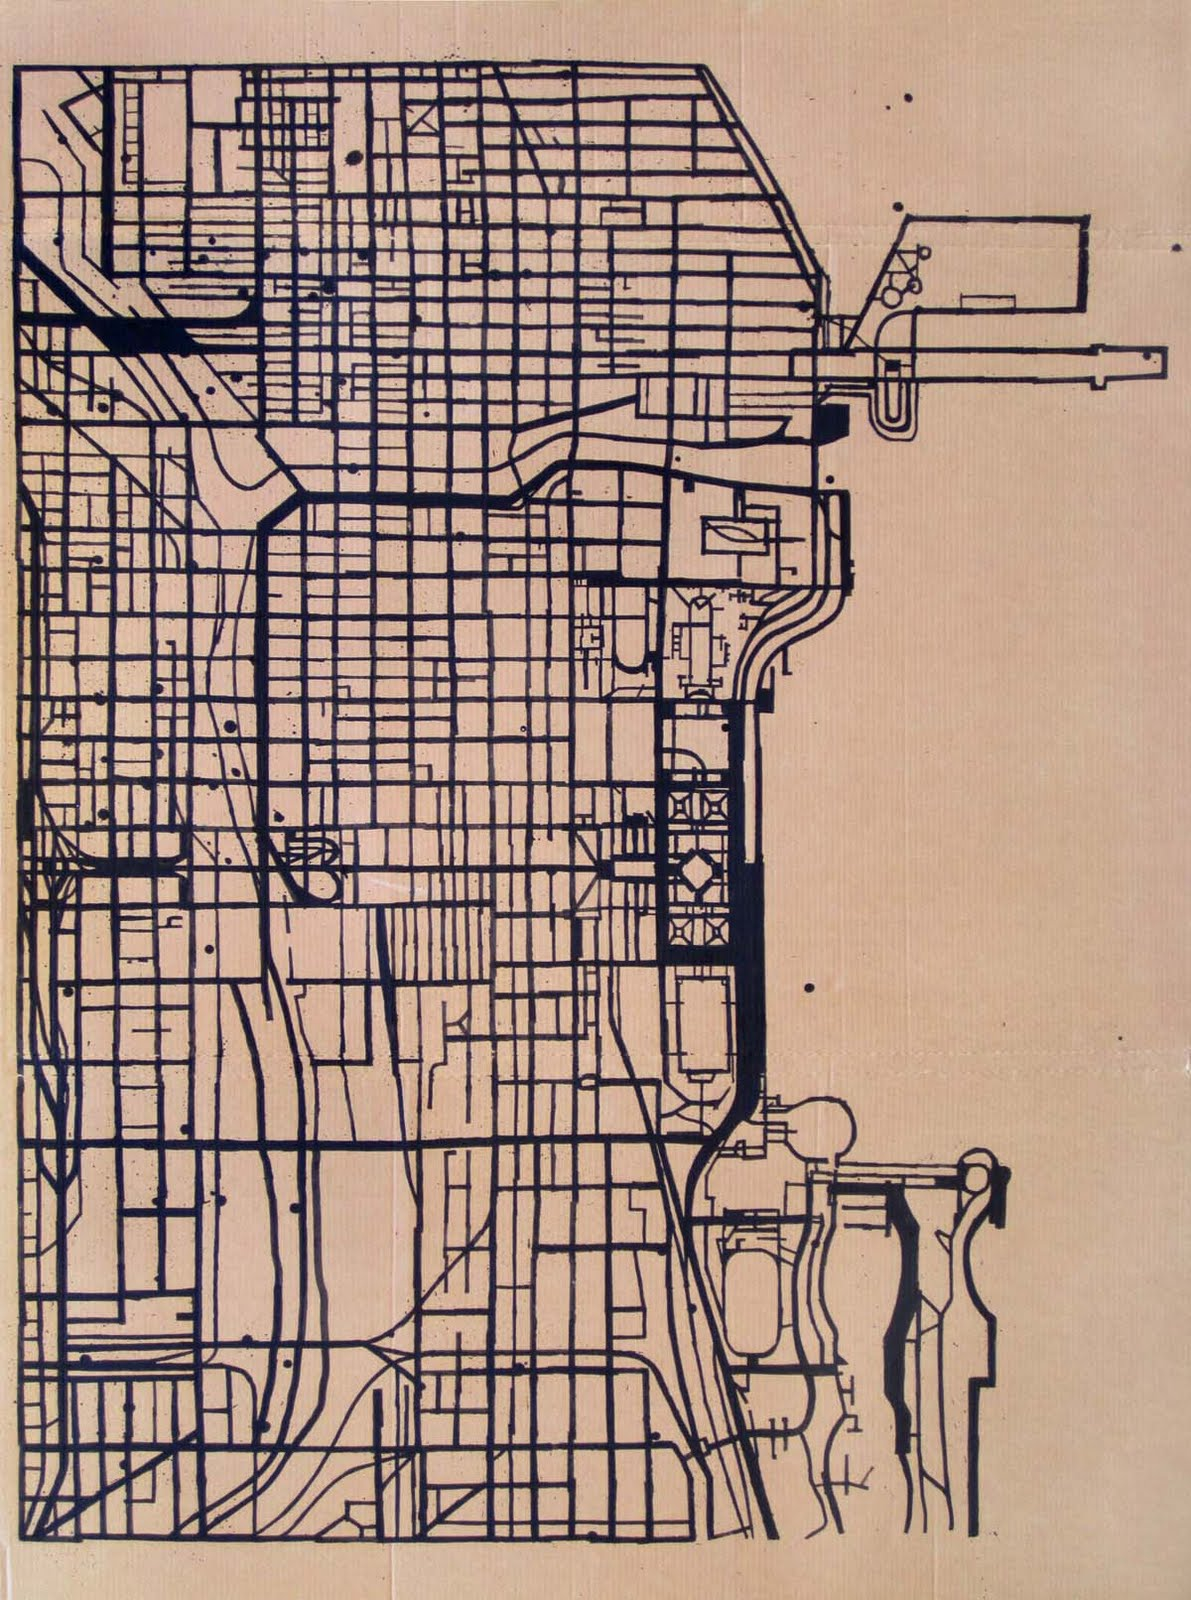 Michael McGuire Large Map Drawing - Chicago map artwork